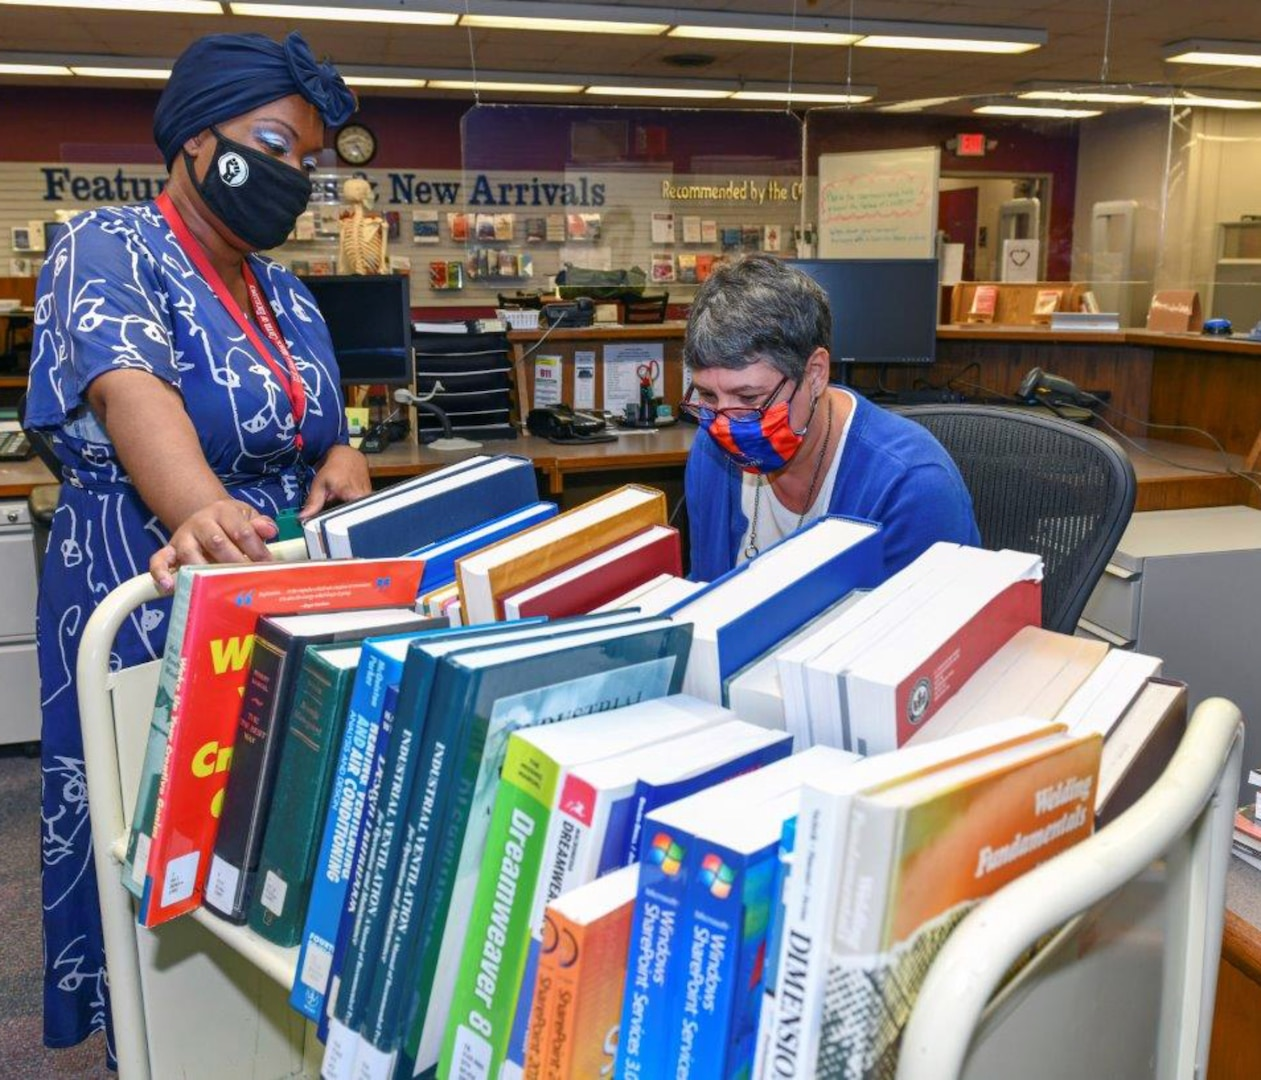 Jodi Quesnell (right), Stimson Library director, and library technician Lakeitra Spight look through a cart of books before placing them on the shelves.